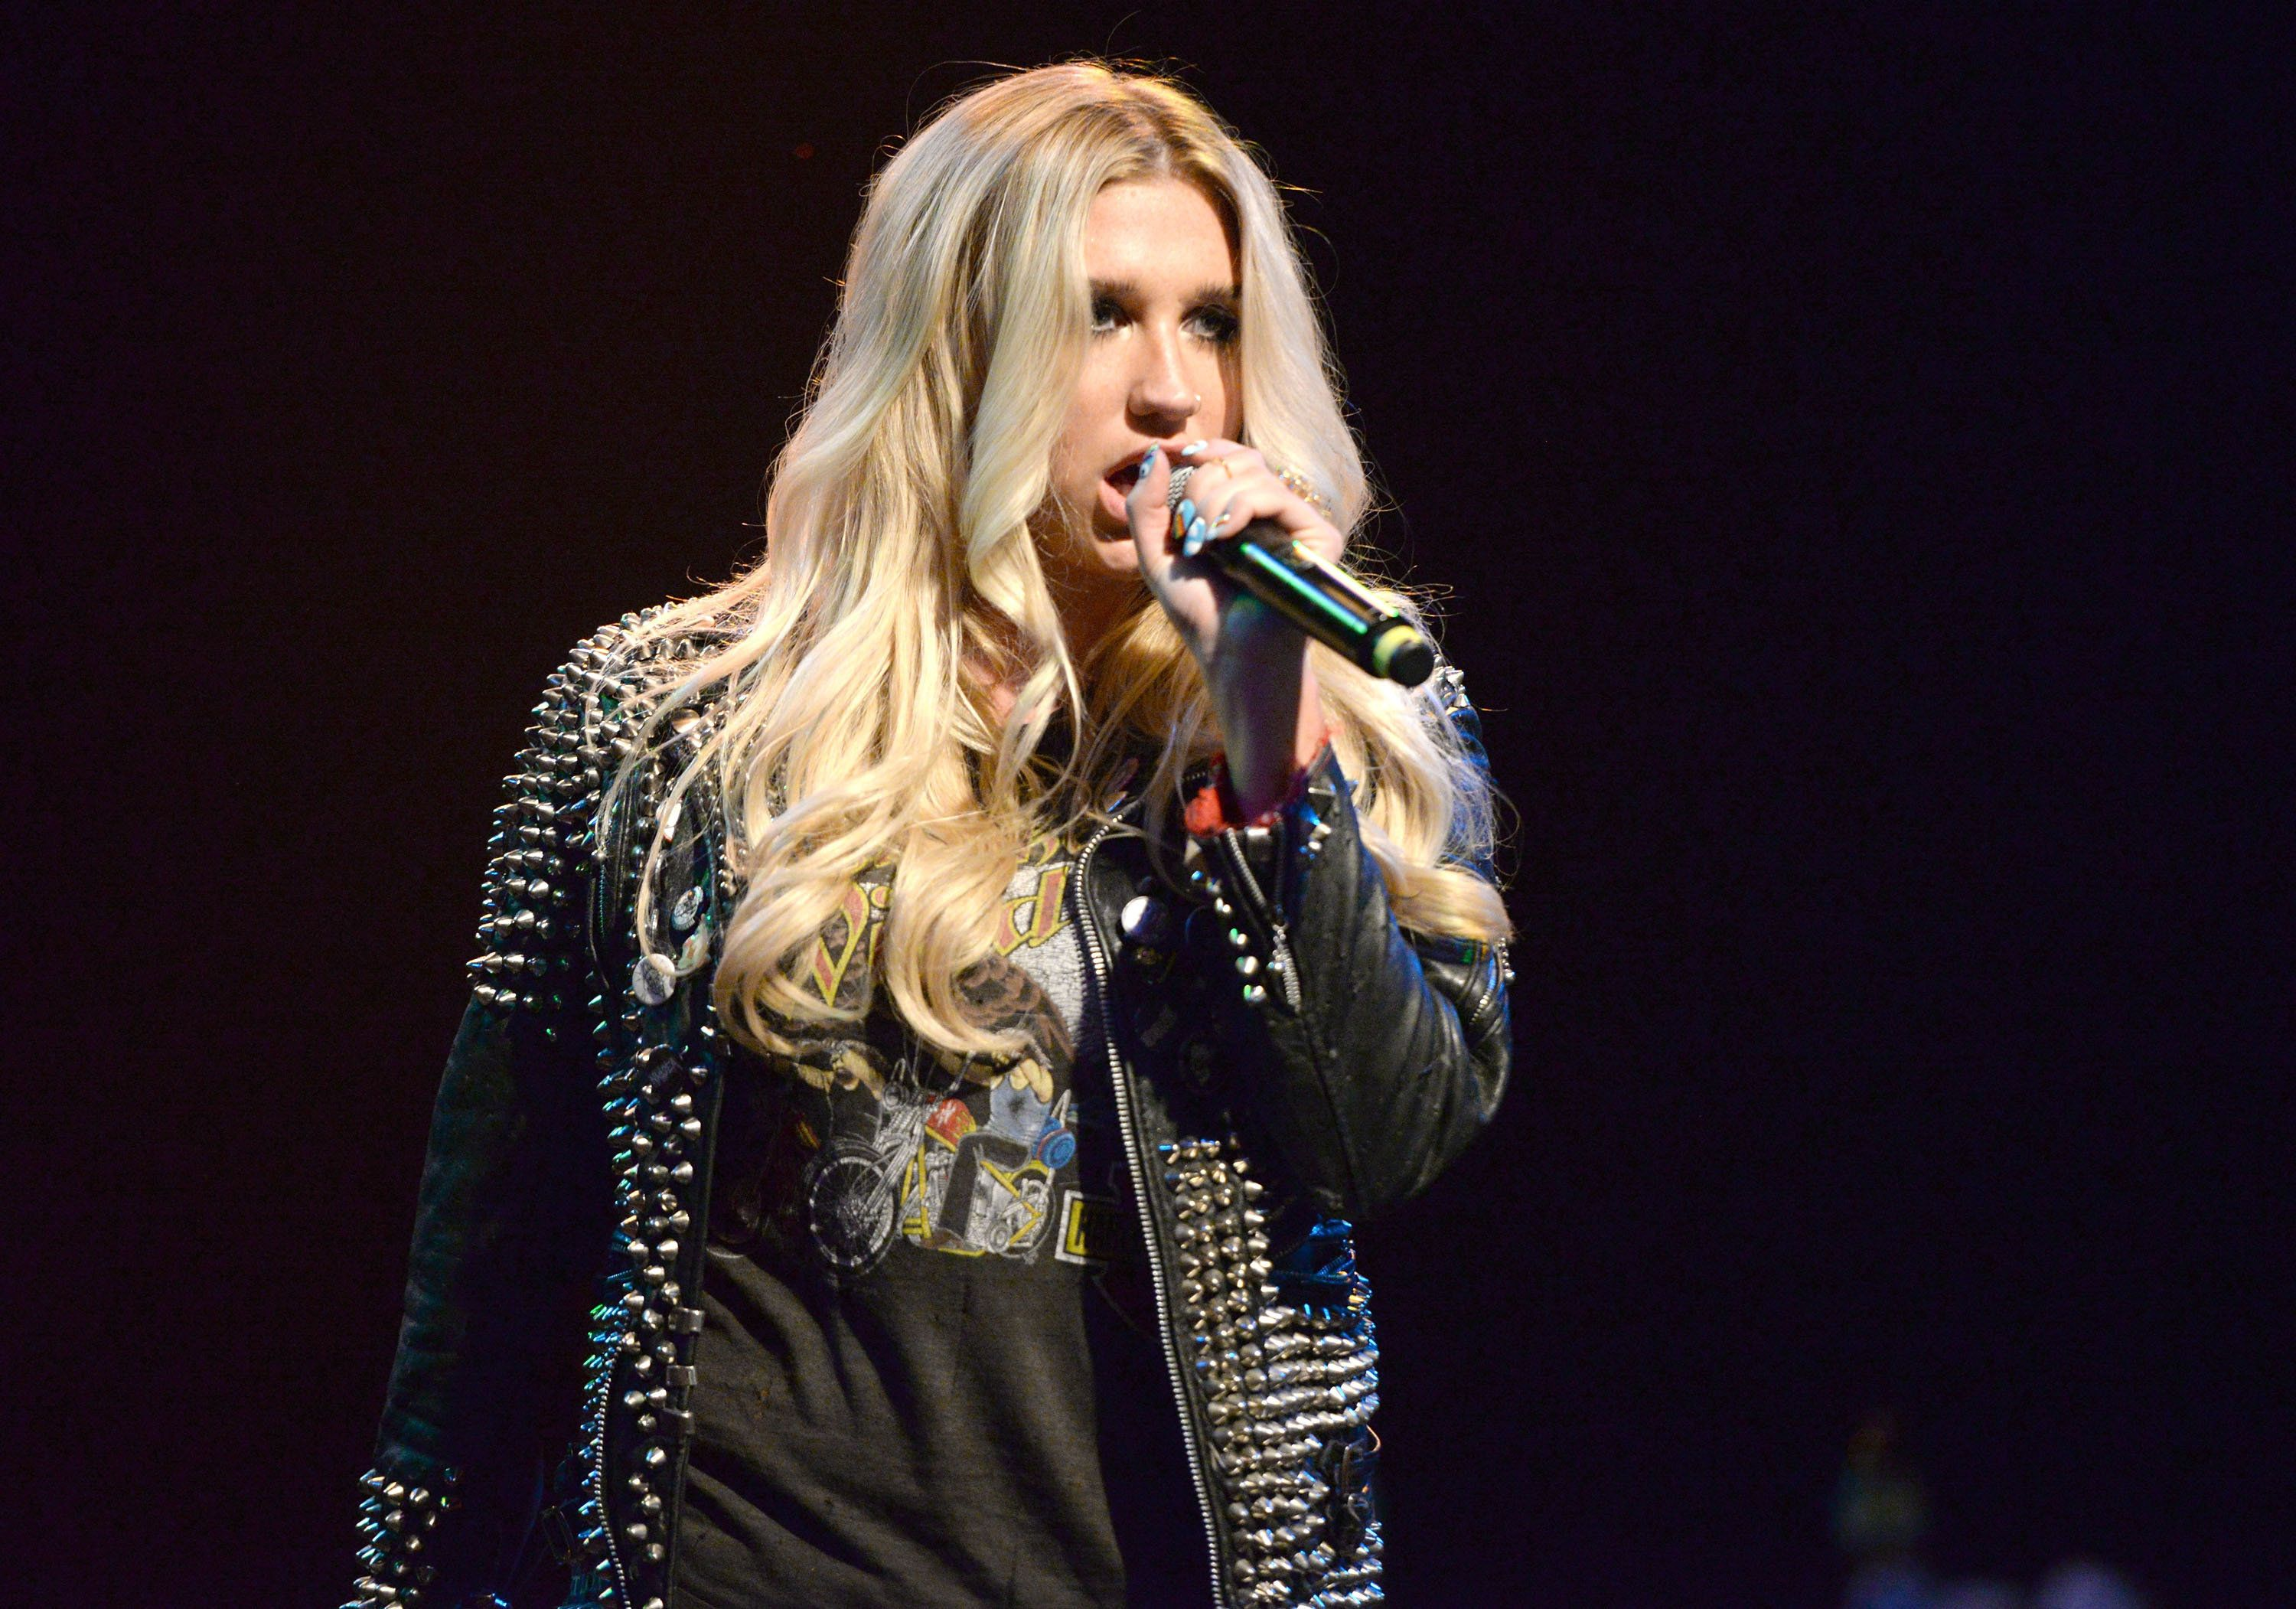 LOS ANGELES, CA - NOVEMBER 03:  Singer Kesha performs onstage with the Hellcat Saints during Rhonda's Kiss Benefit Concert at the El Rey Theatre on November 3, 2015 in Los Angeles, California.  (Photo by Scott Dudelson/Getty Images)